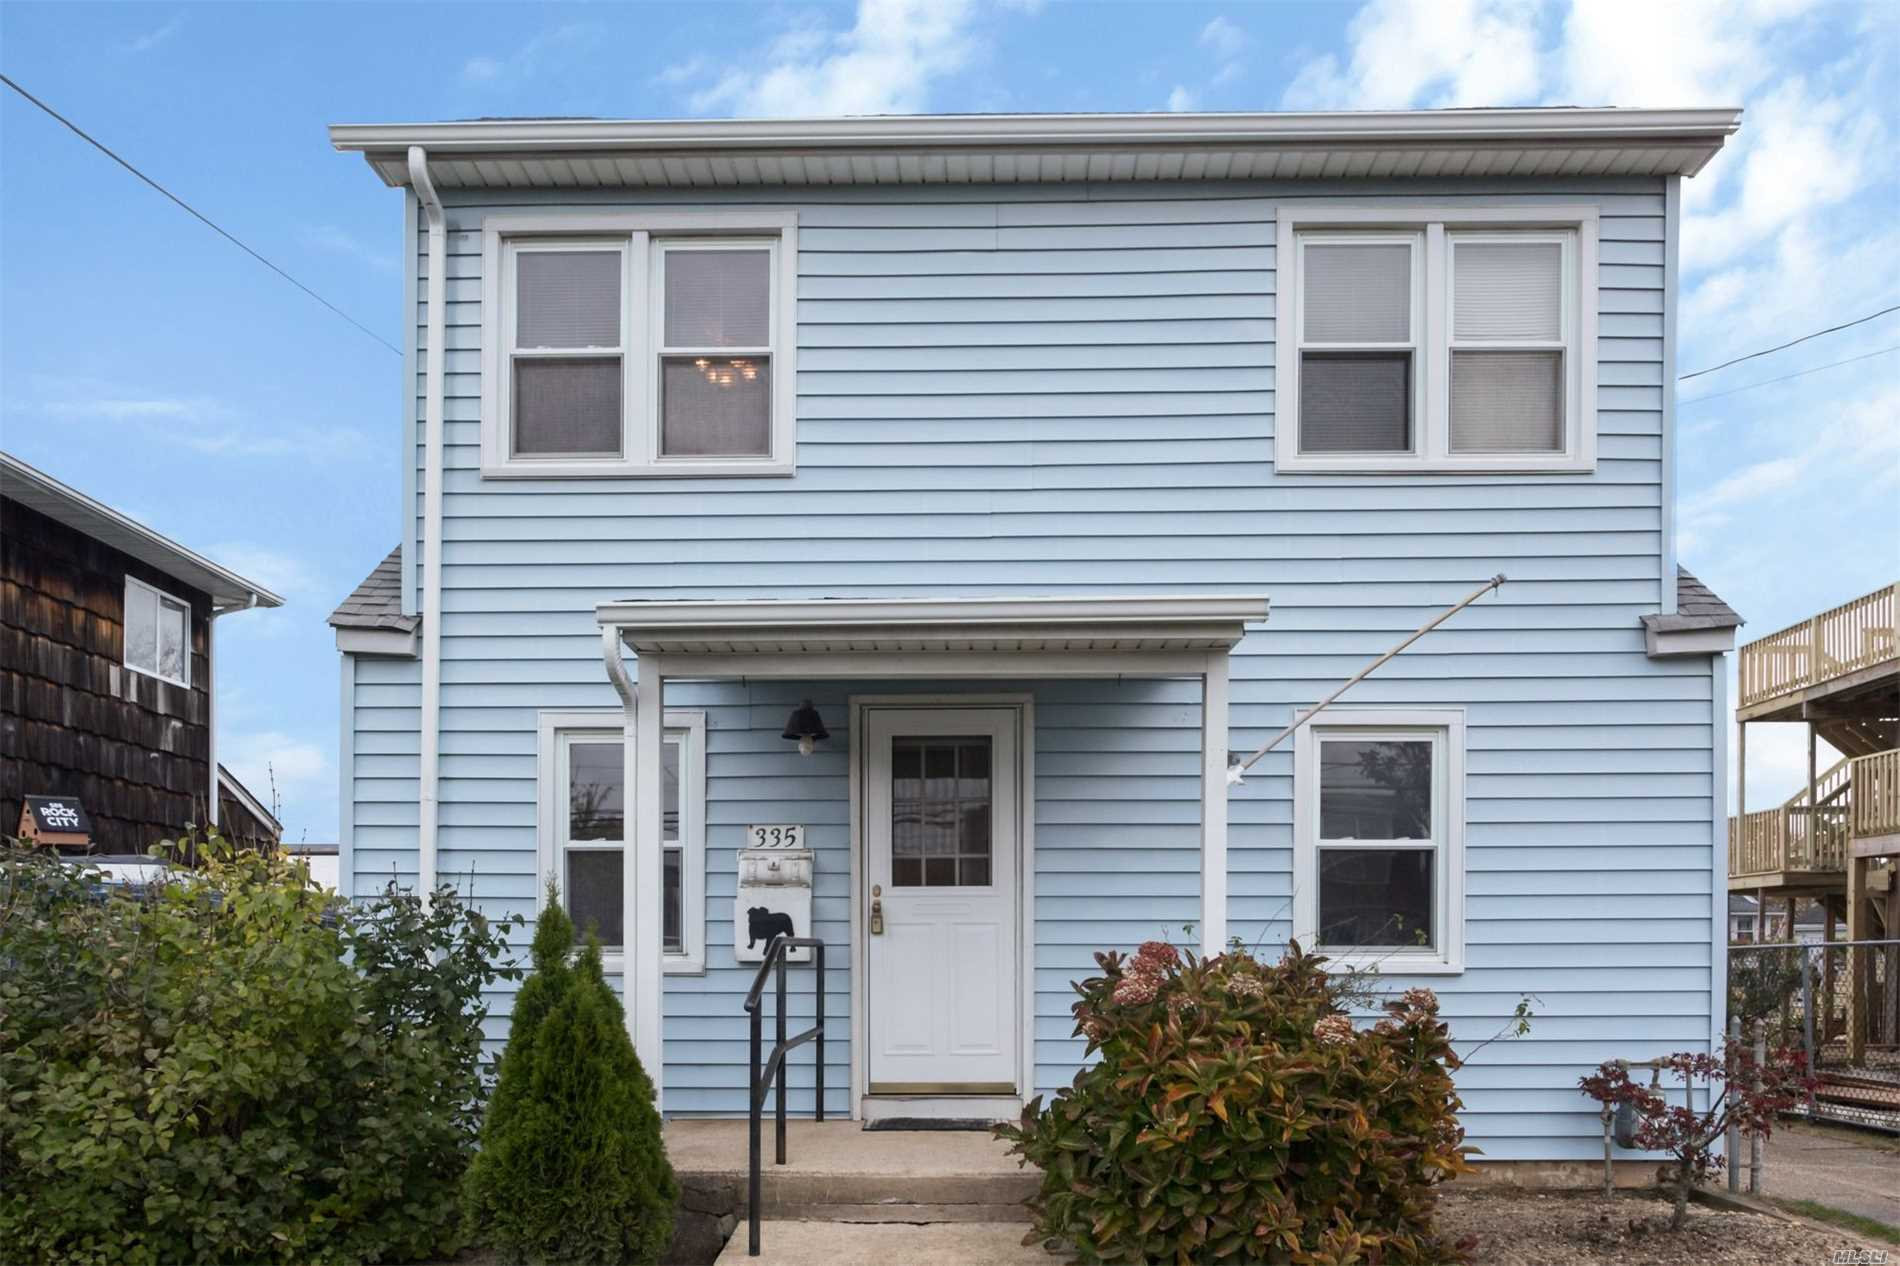 Photo of home for sale at 335 West Dr, Copiague NY